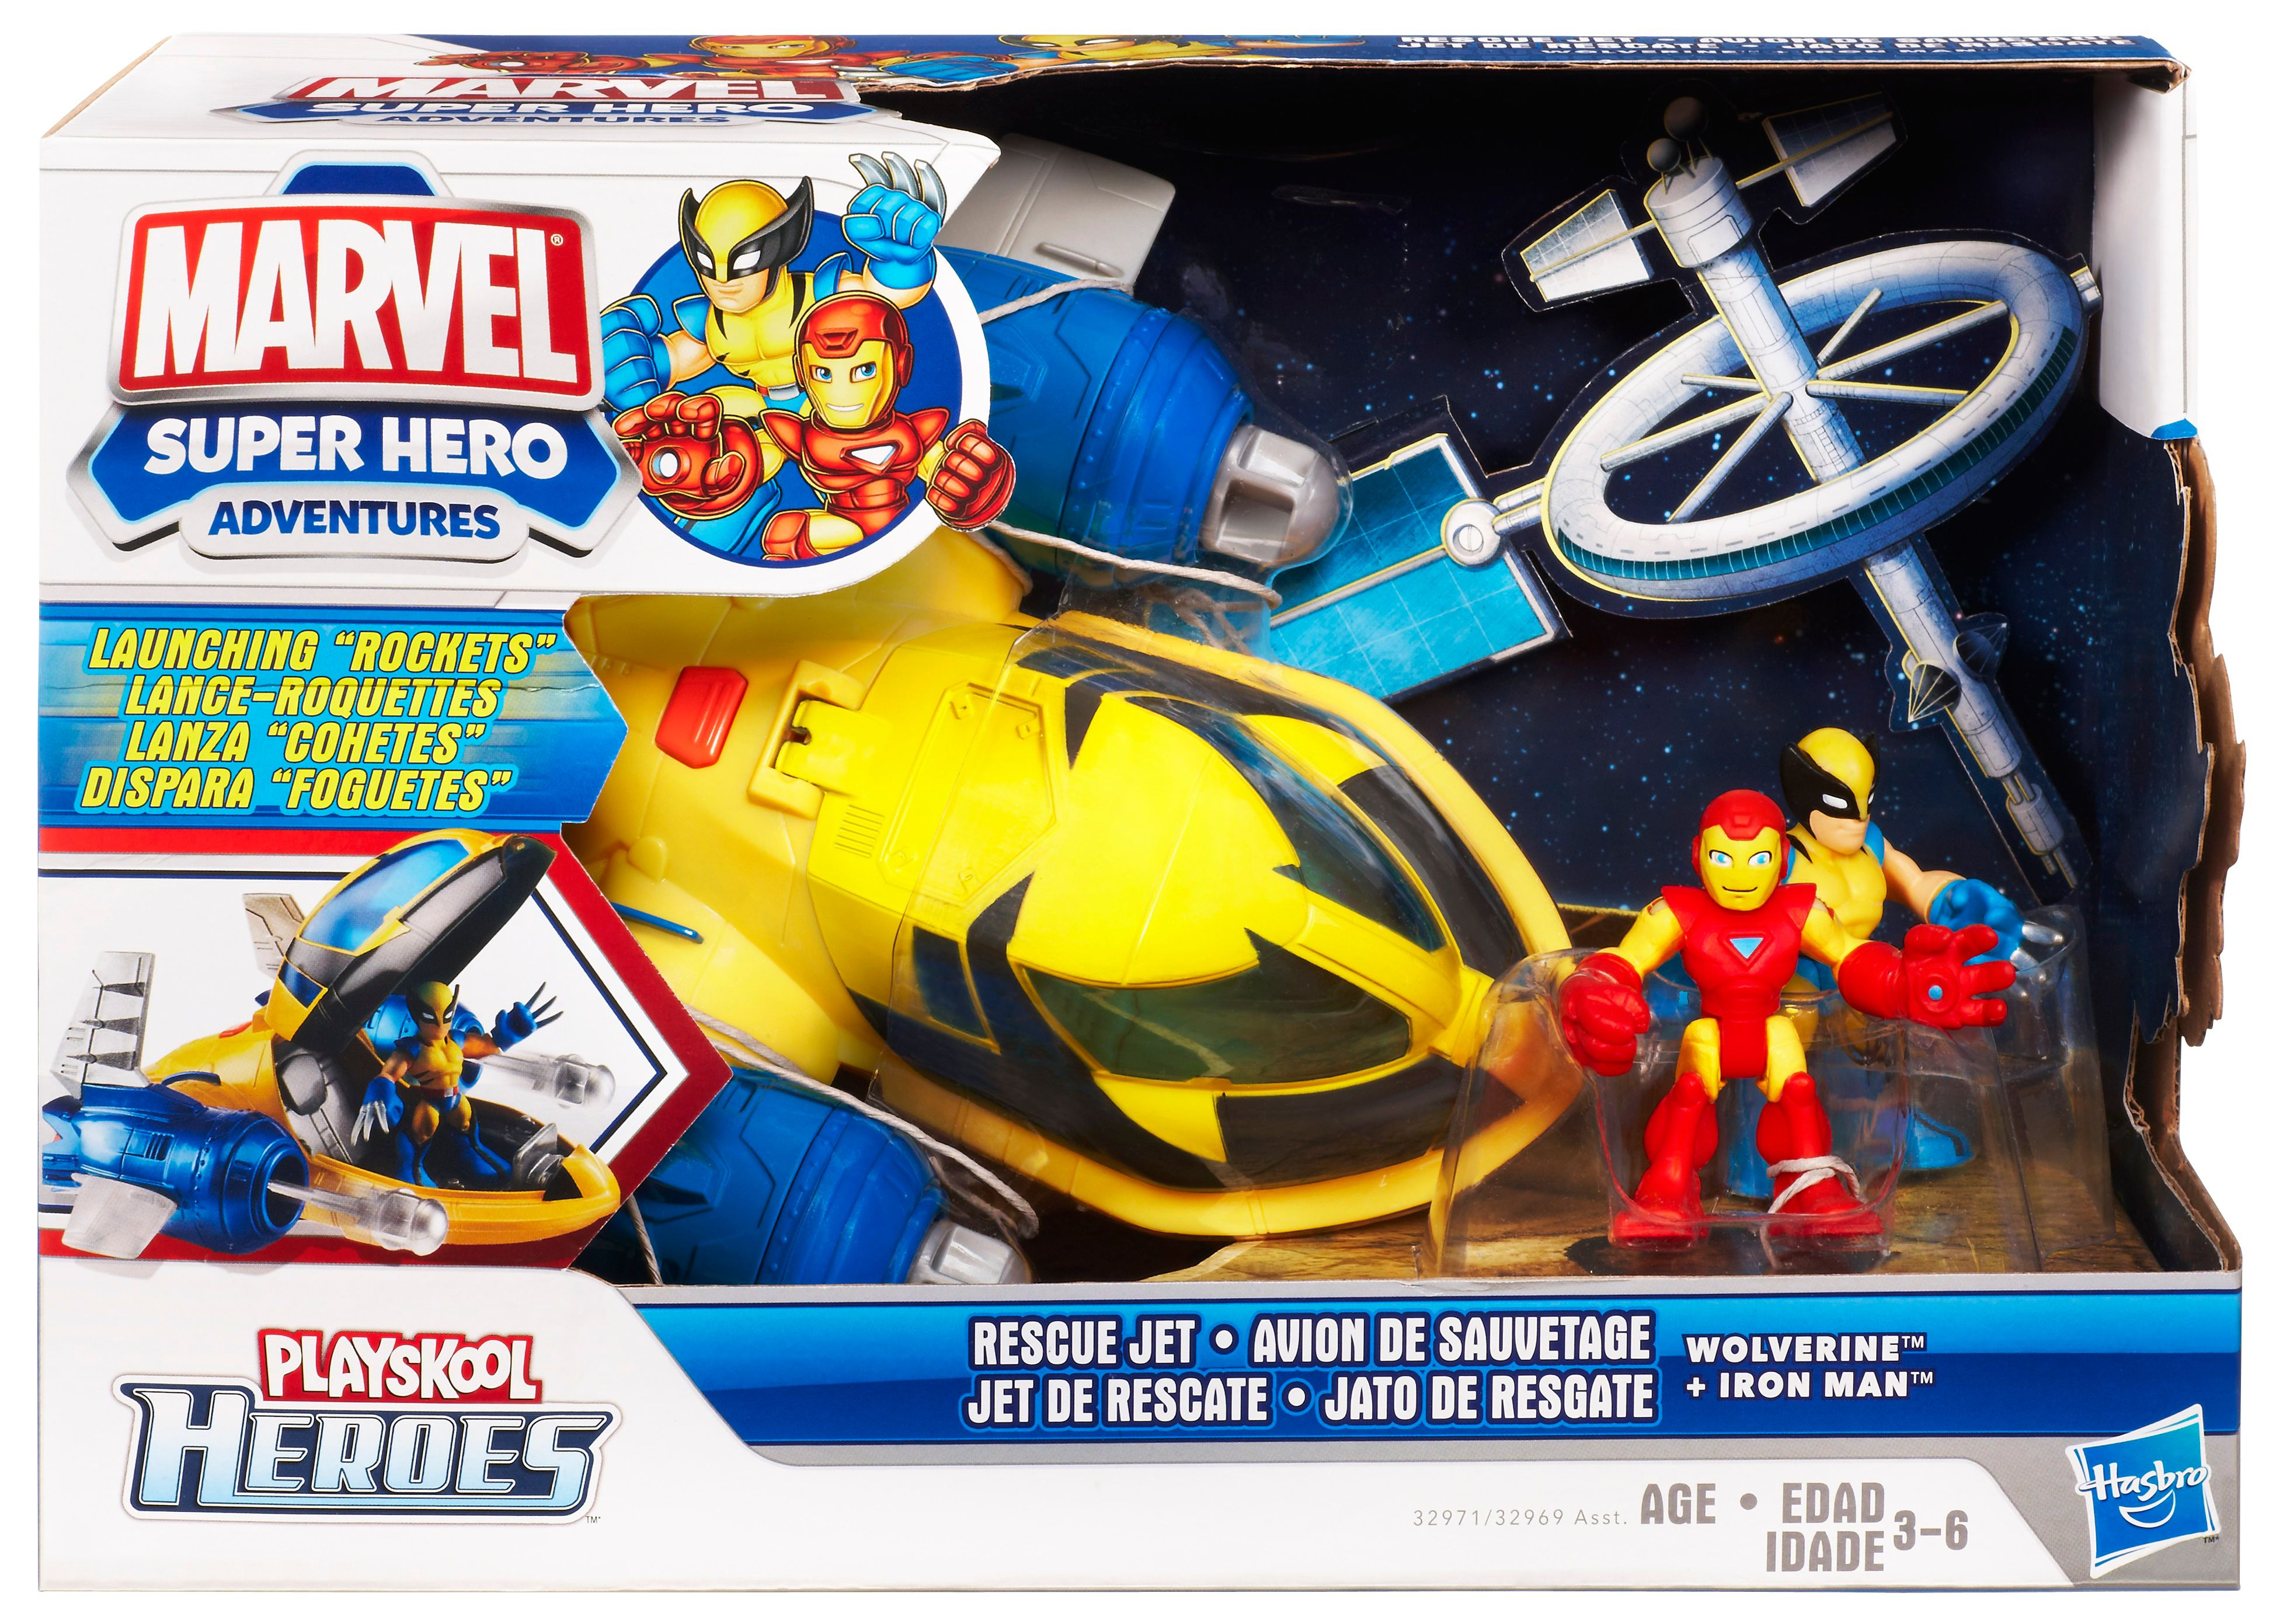 Rescue jet Wolverine & Iron Man